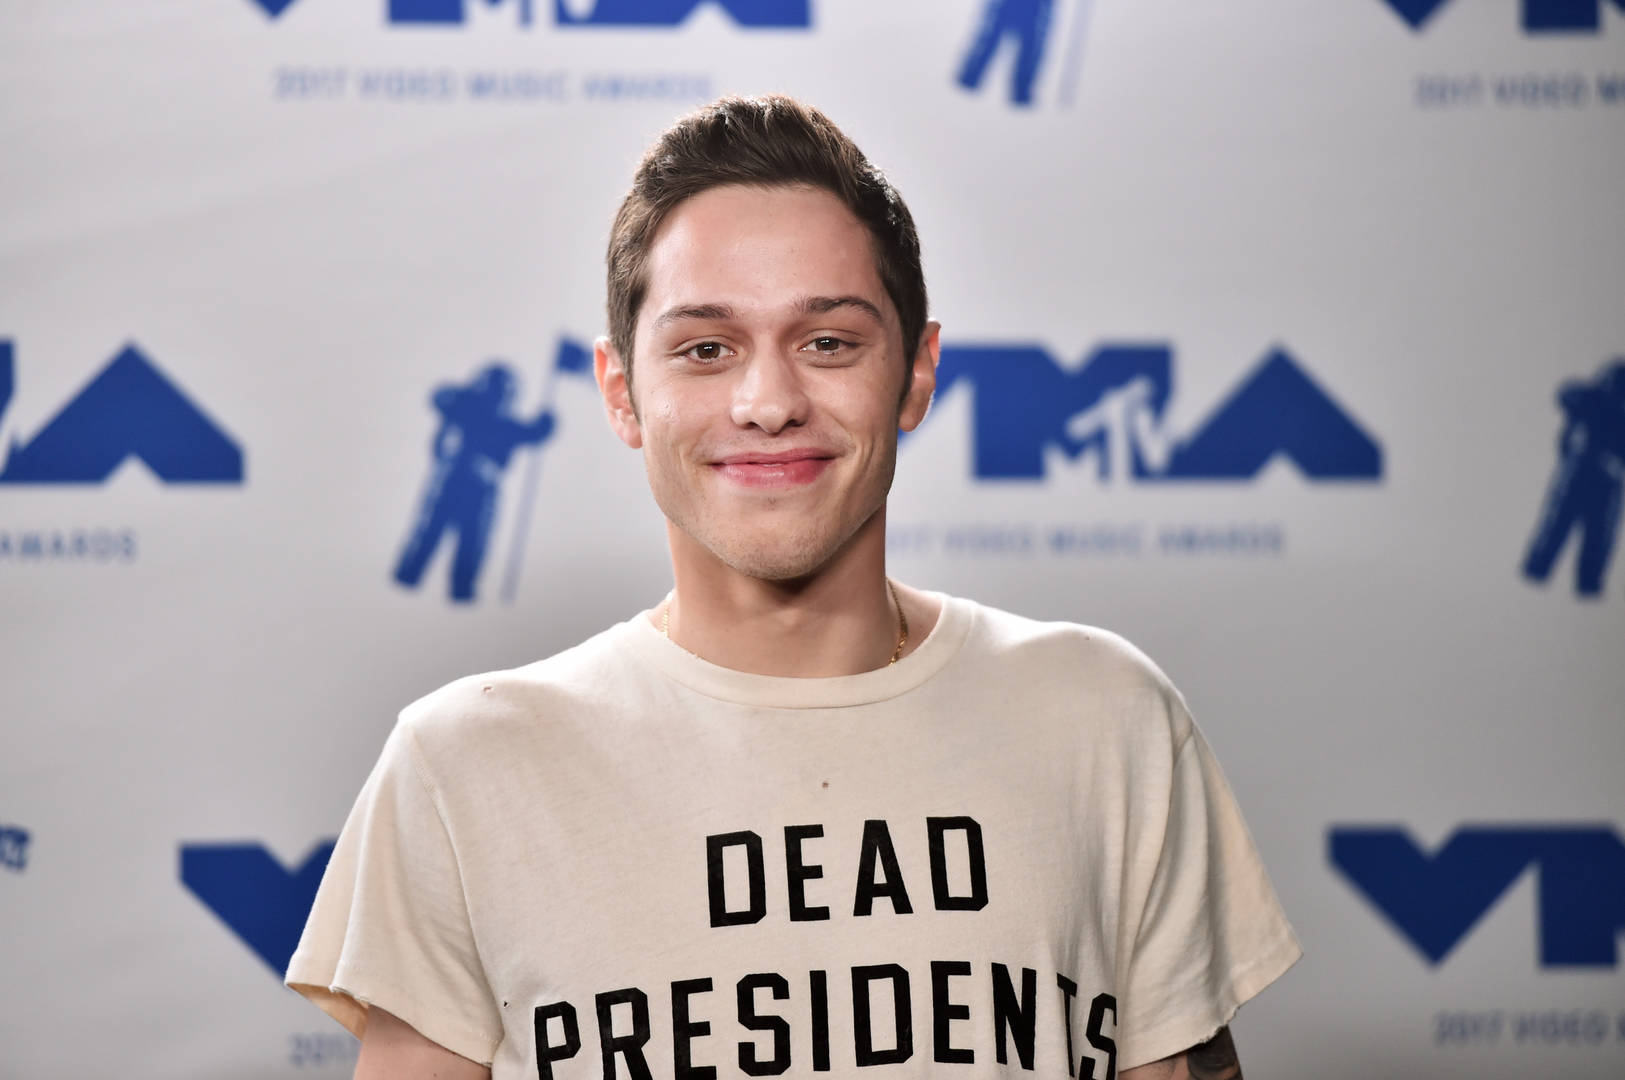 Pete Davidson Defends Mac Miller's Honor During Standup Gig